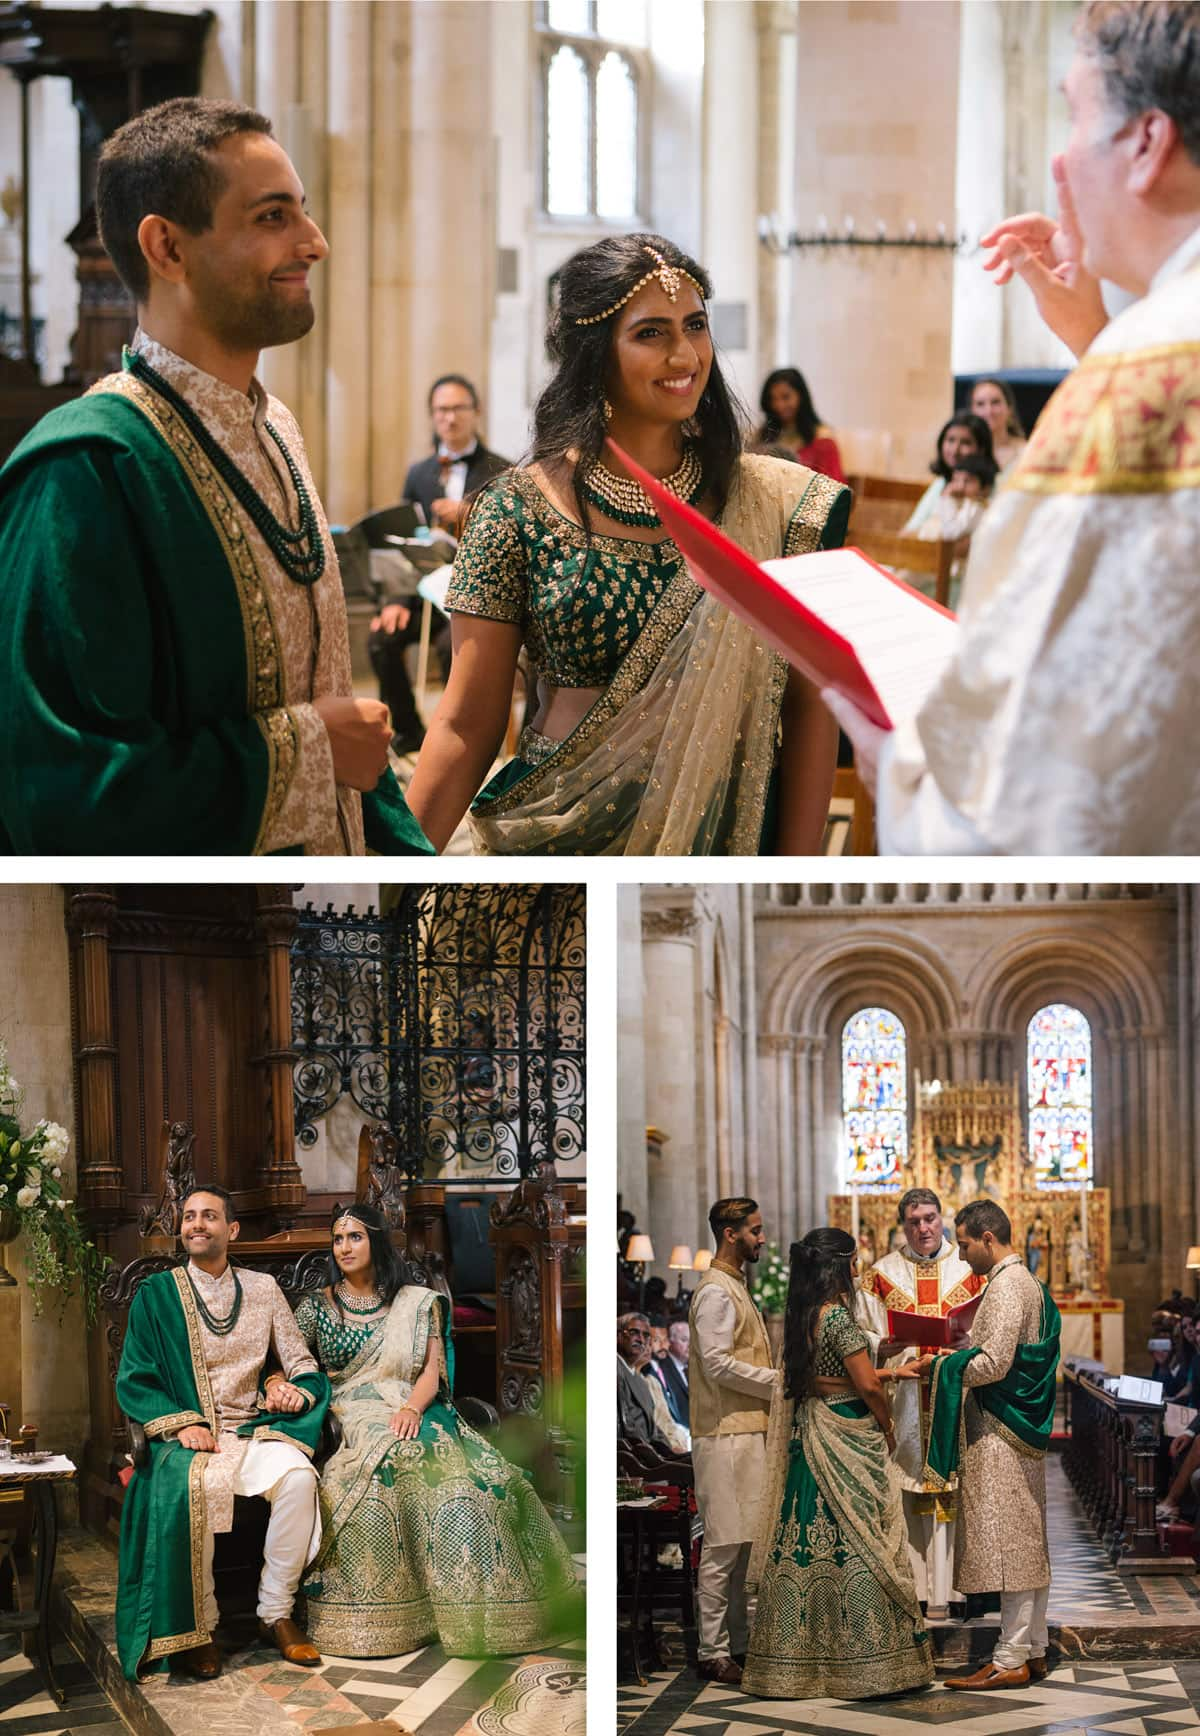 Indian wedding ceremony at Christchurch college. Bride and groom in green and gold.